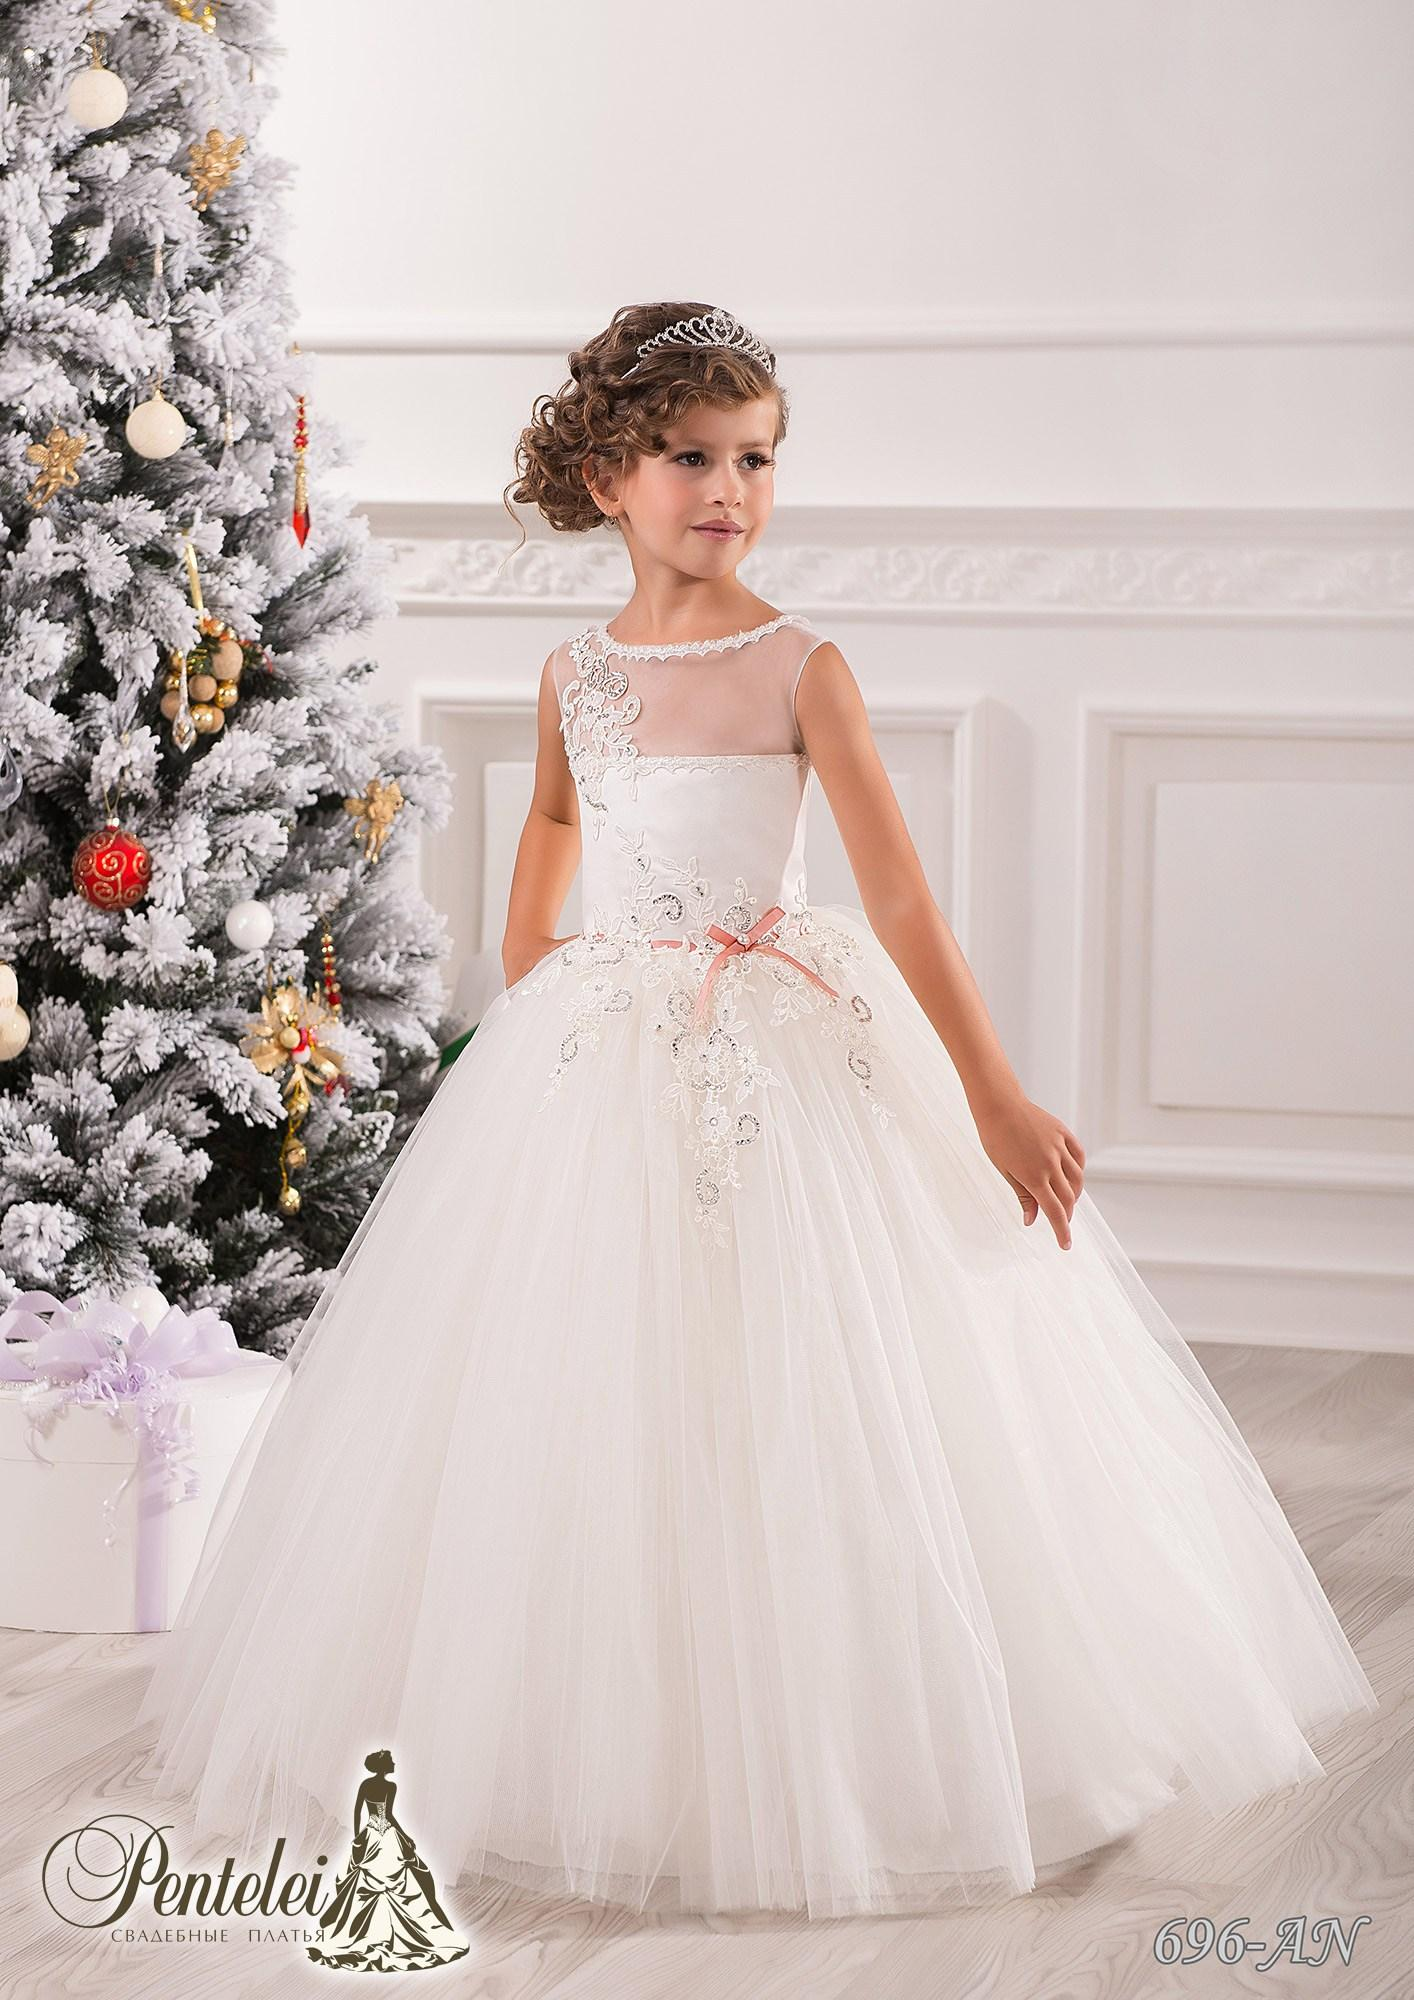 Beautiful Jewel Applique Sash Baby Girl Pageant Dresses Party First